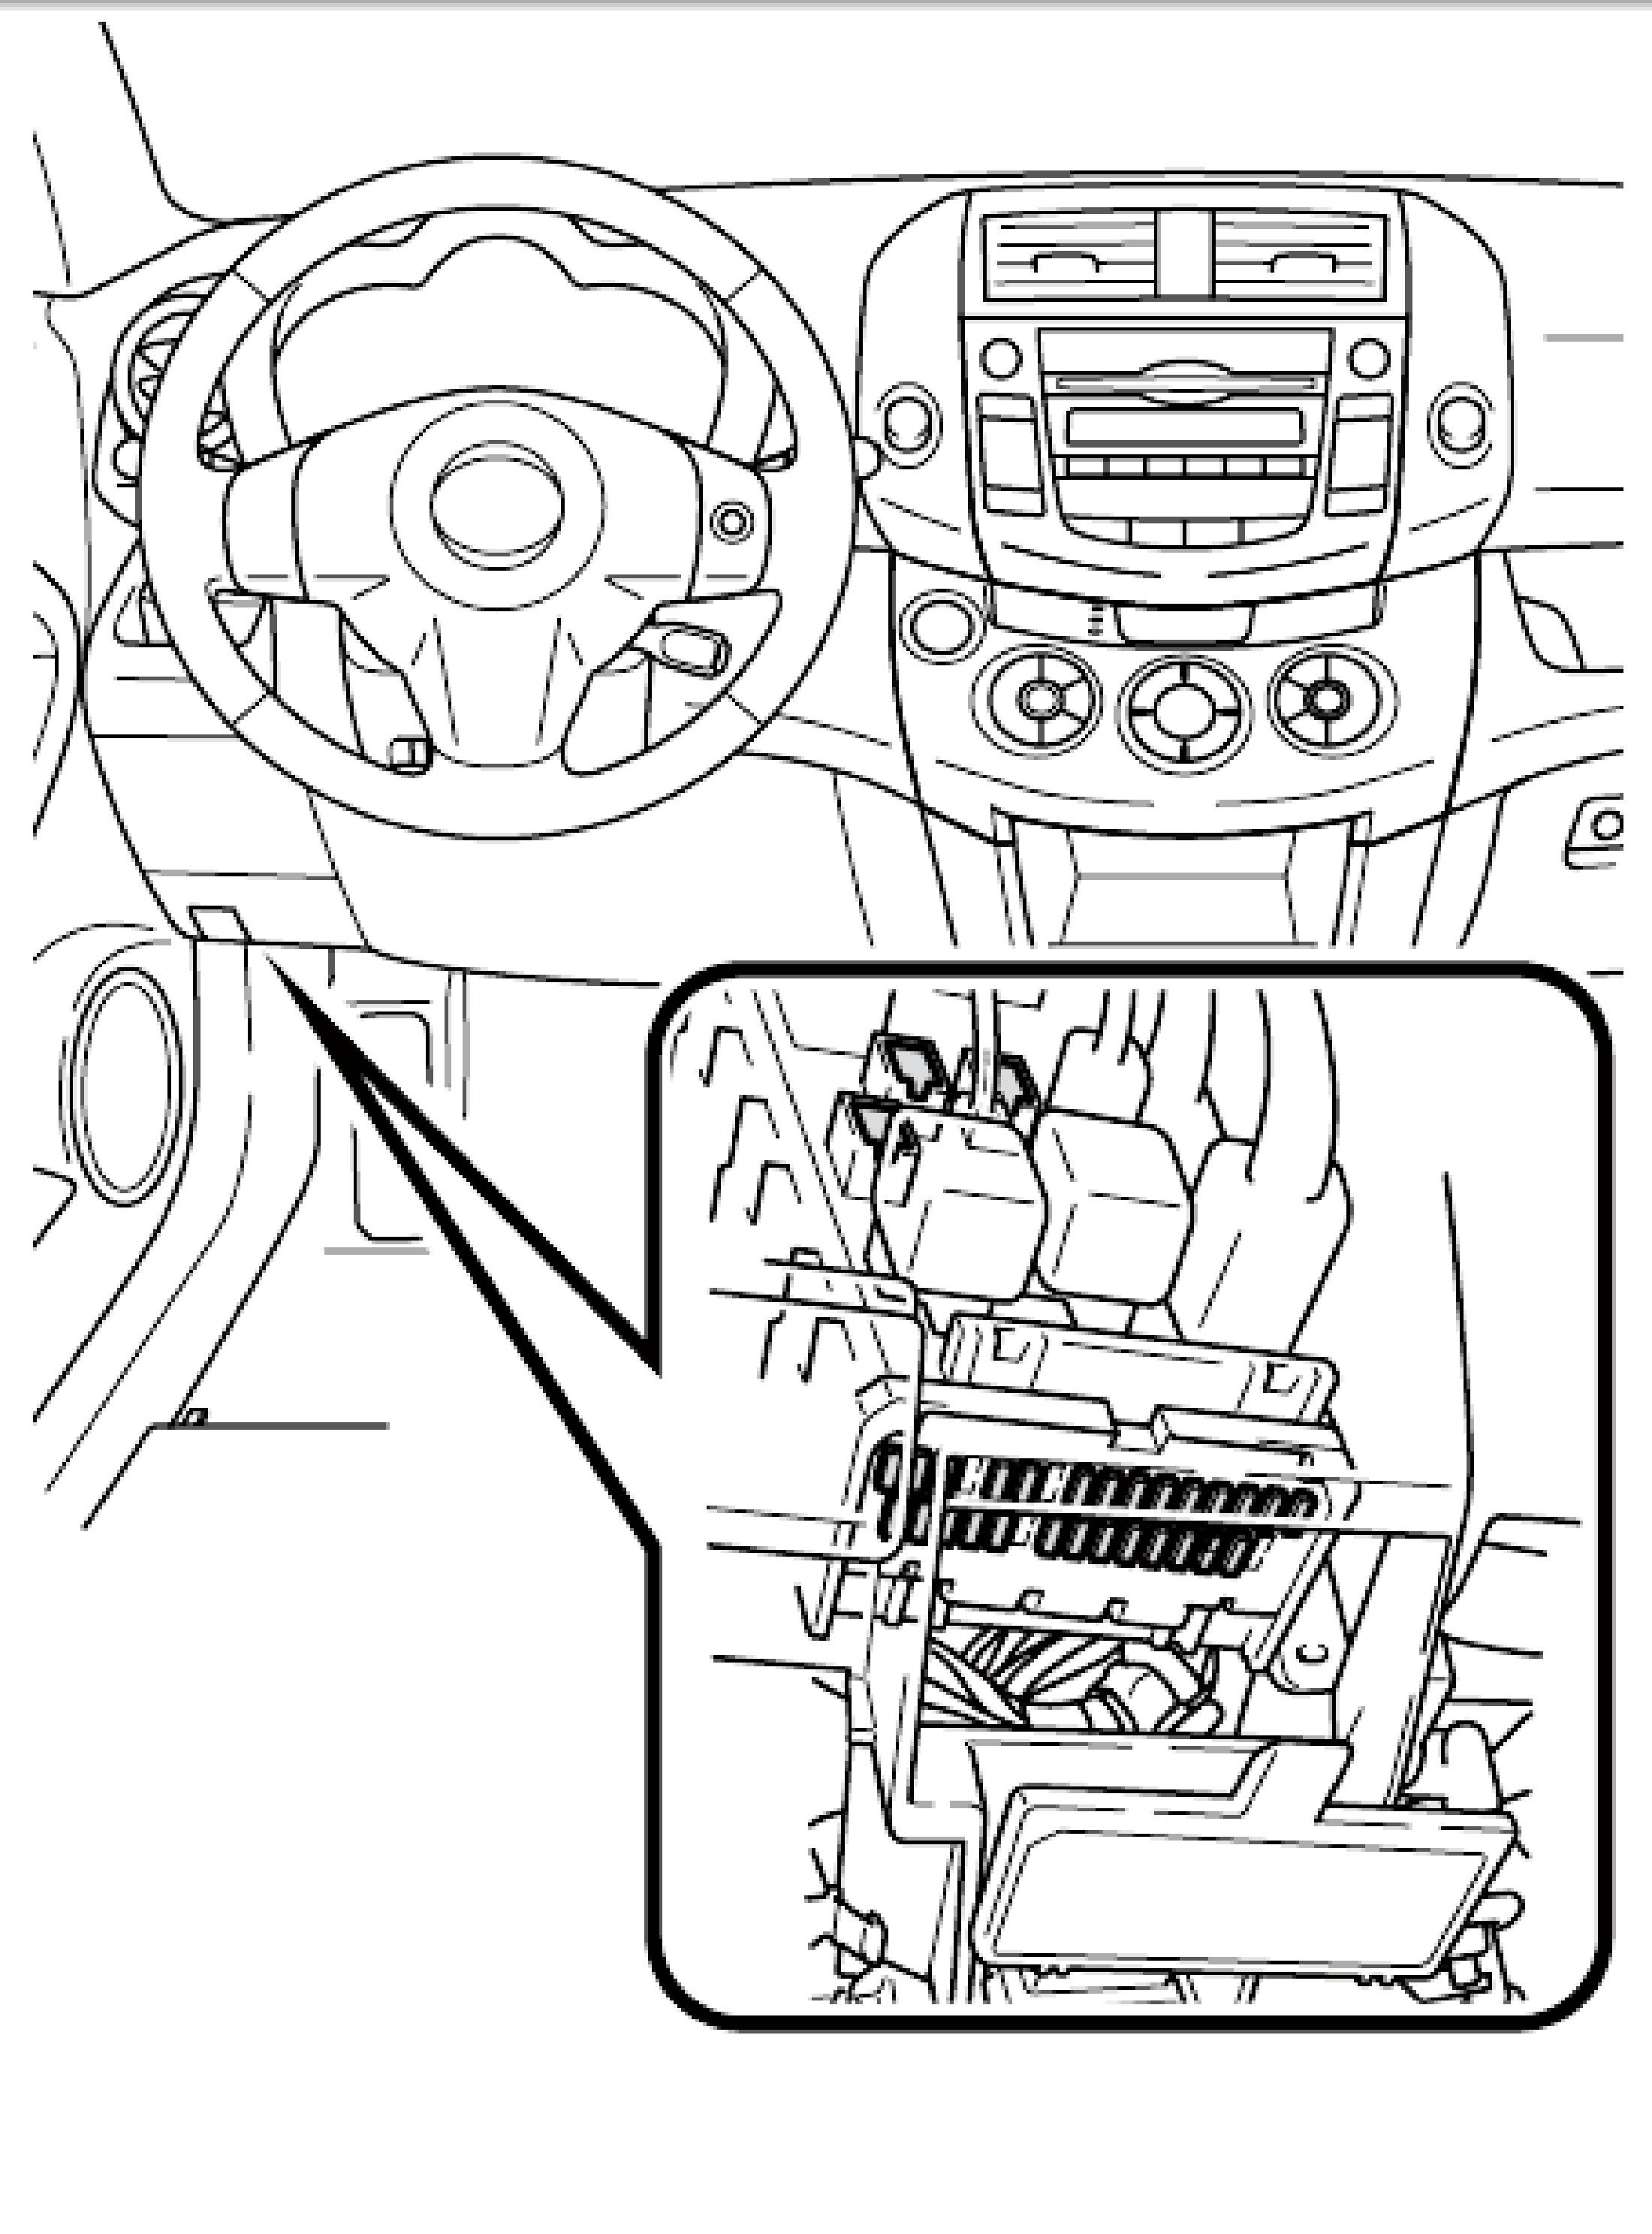 02 toyota corolla fuse box locations detailed schematics diagram rh jvpacks  com 2005 Camry Fuse Box